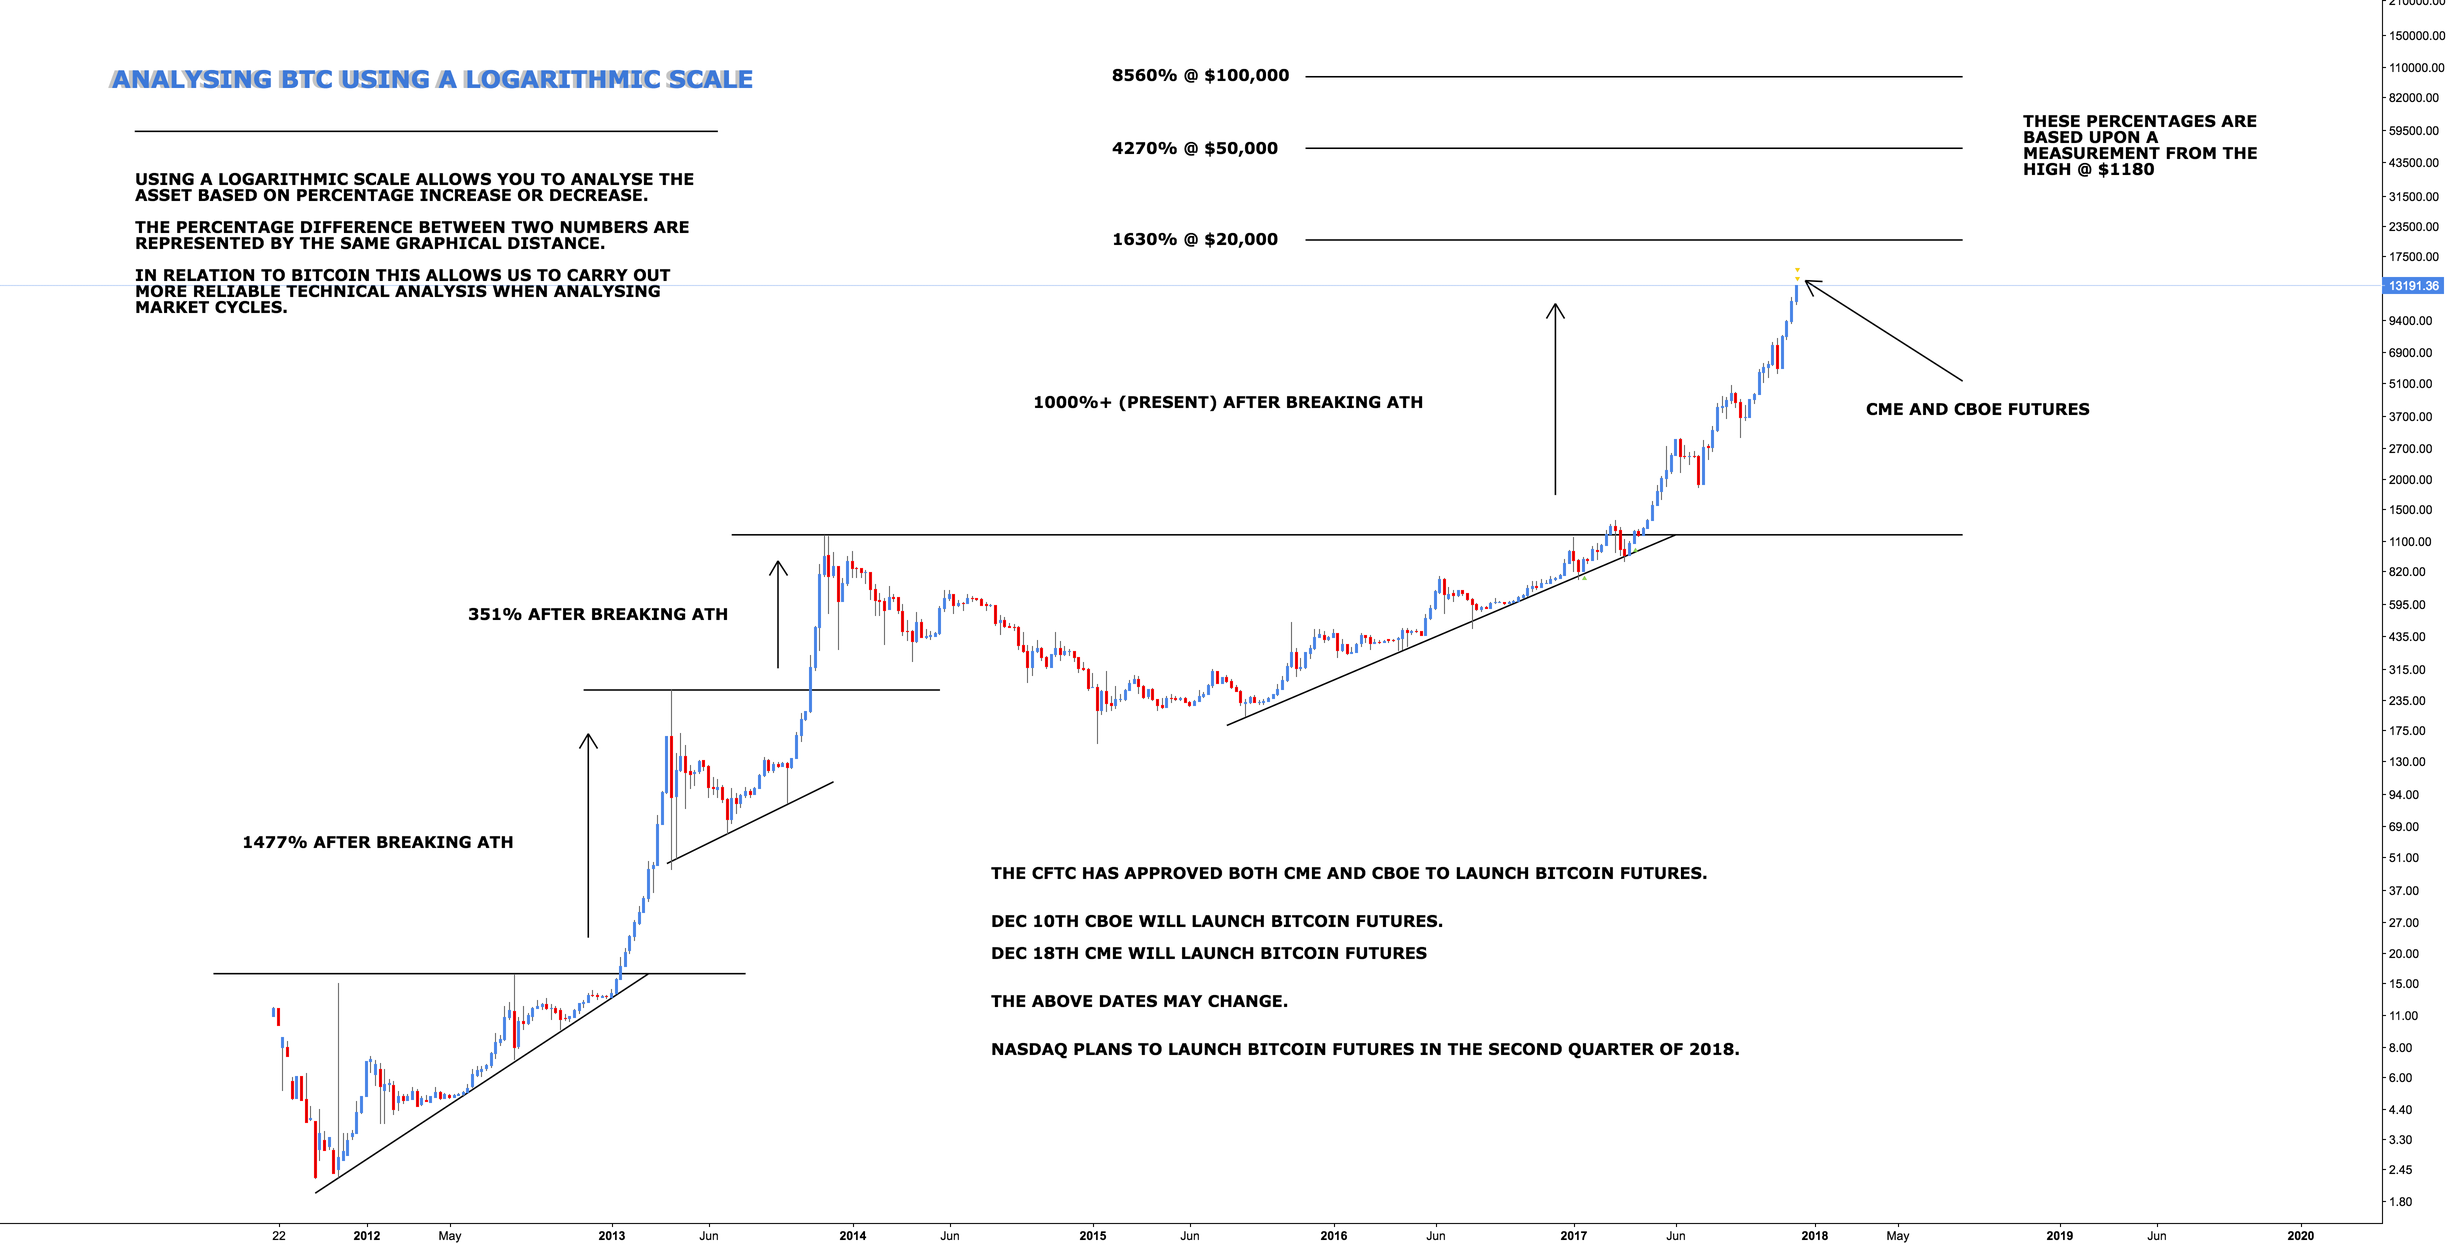 Bitcoin - Cyclical Measurements